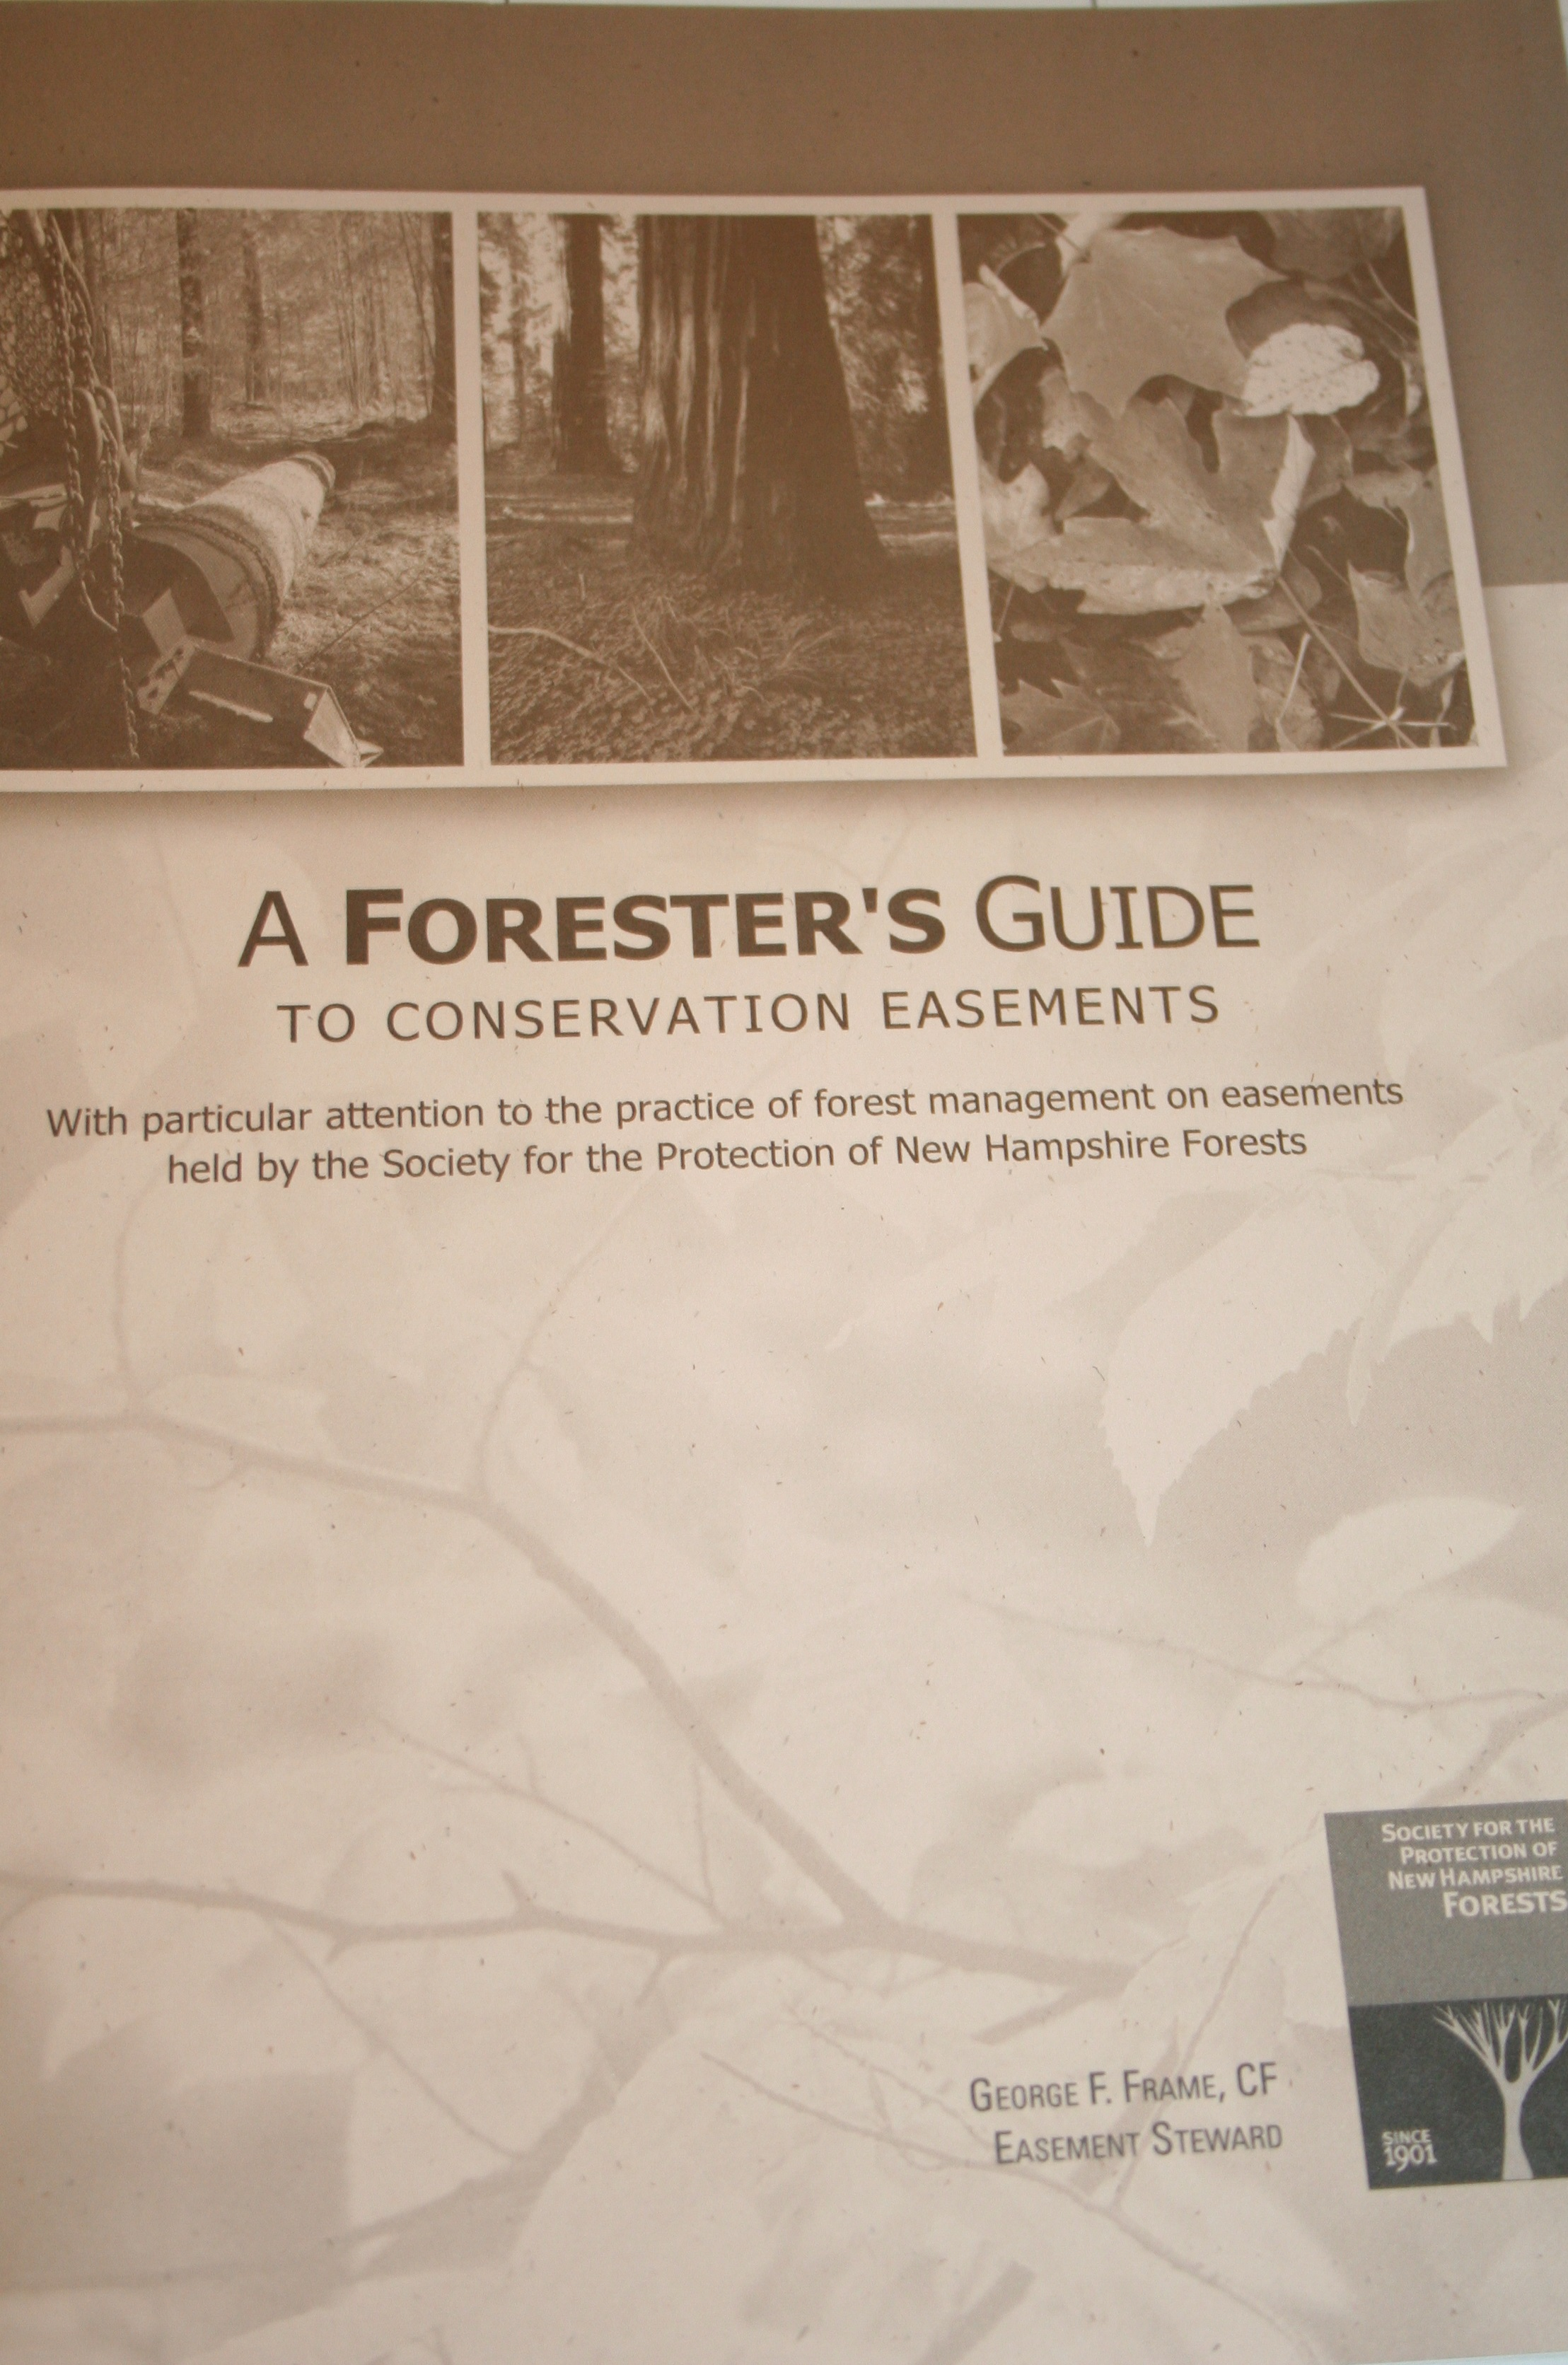 The cover of the Forester's Guide.